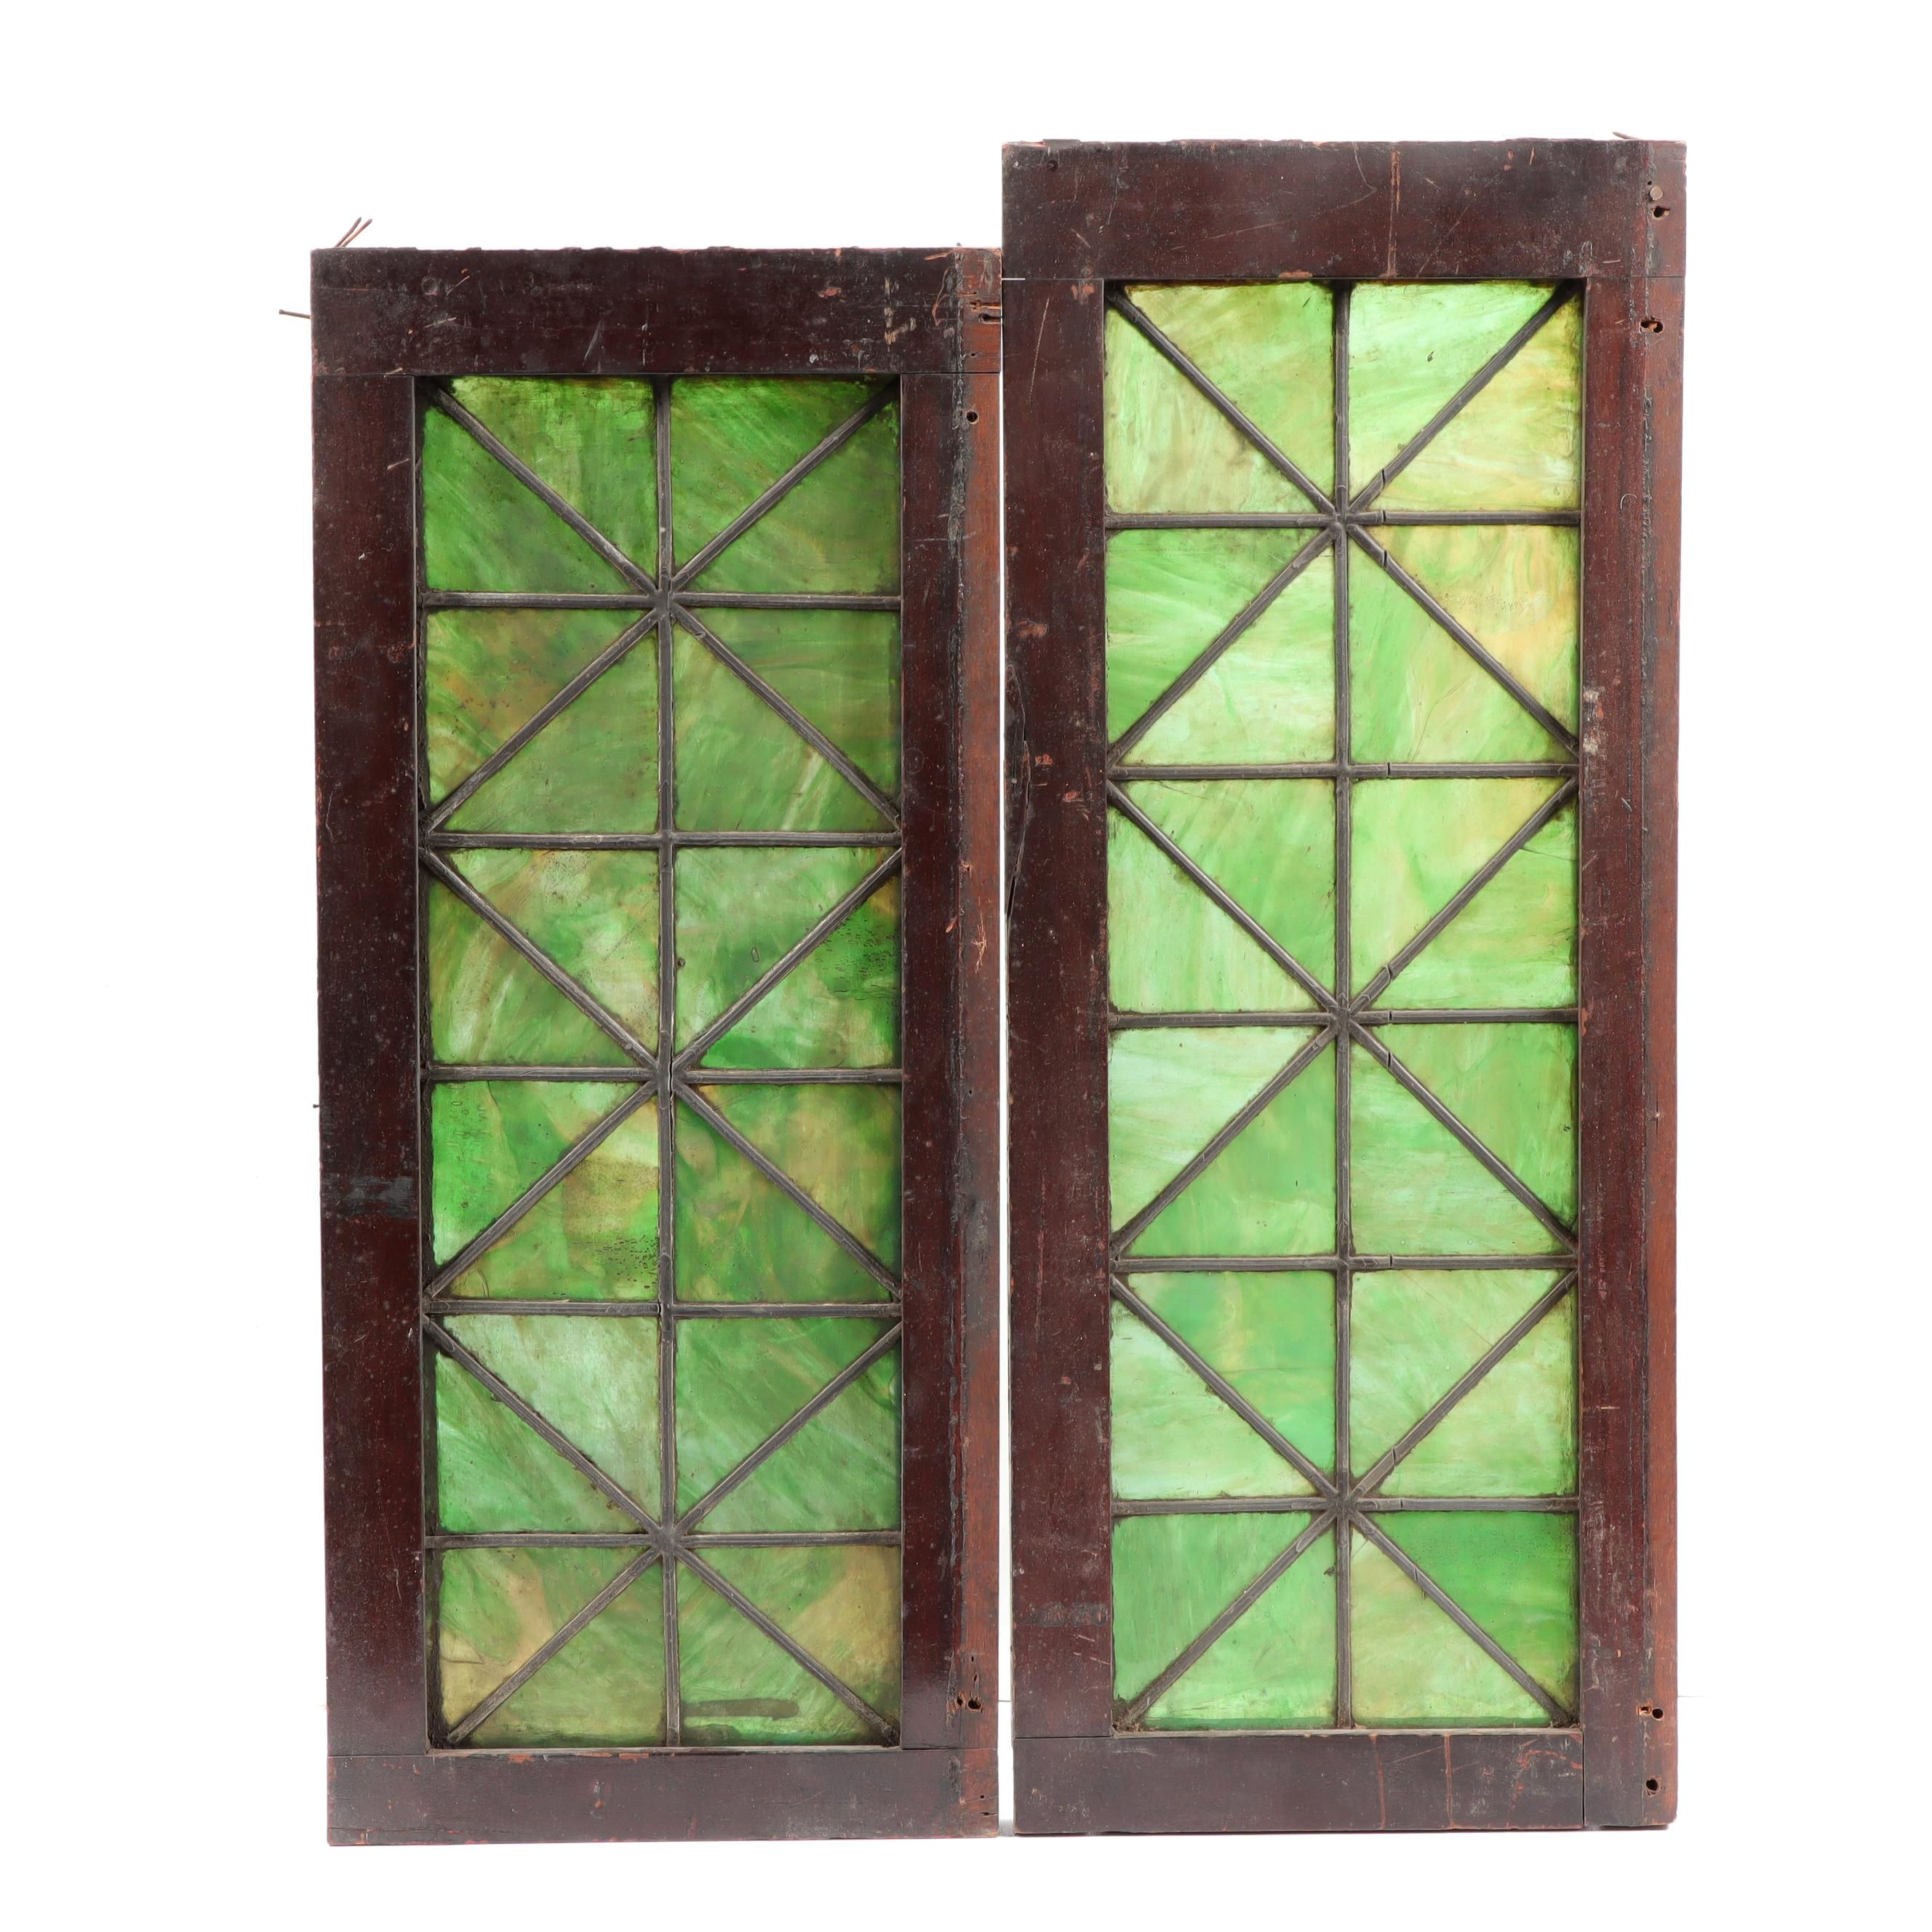 Pair of Green Stained Glass Window Panels